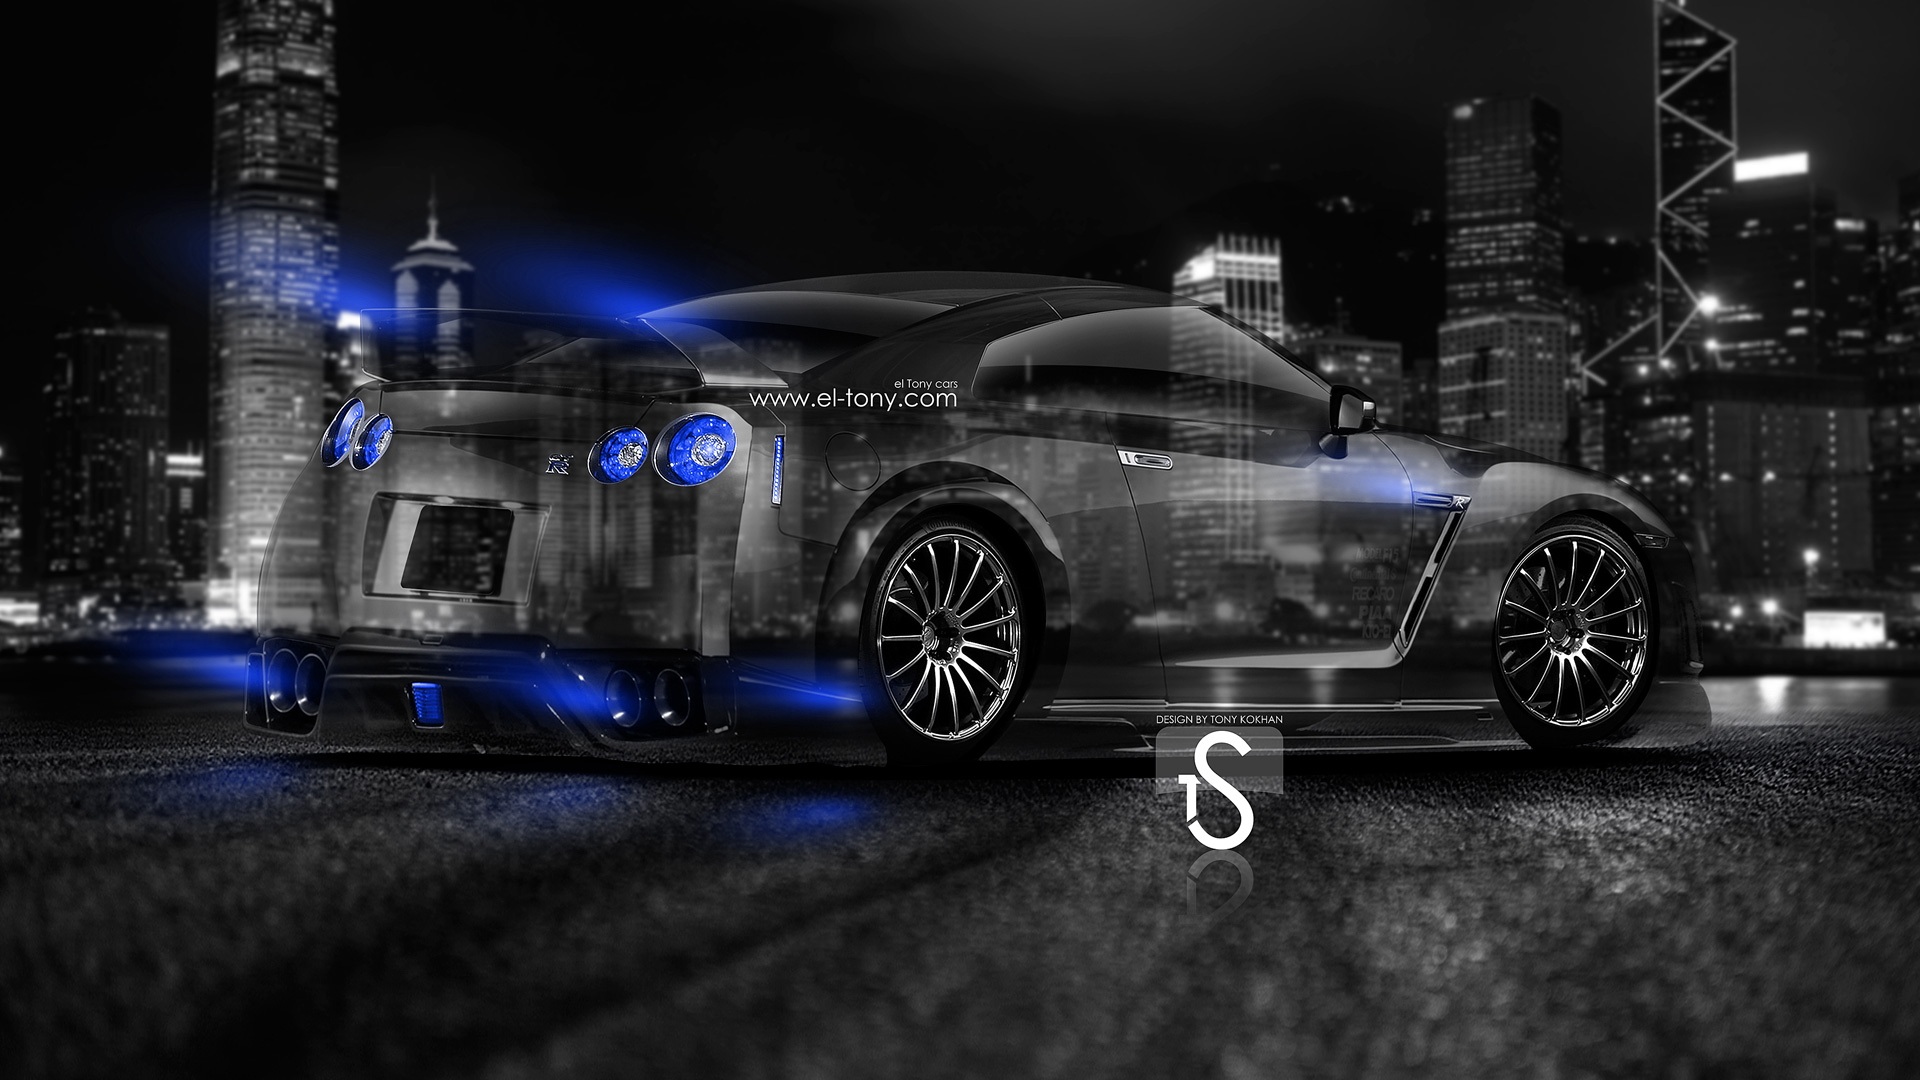 Wonderful Superieur Nissan GTR R35 Tuning Back Crystal City Car